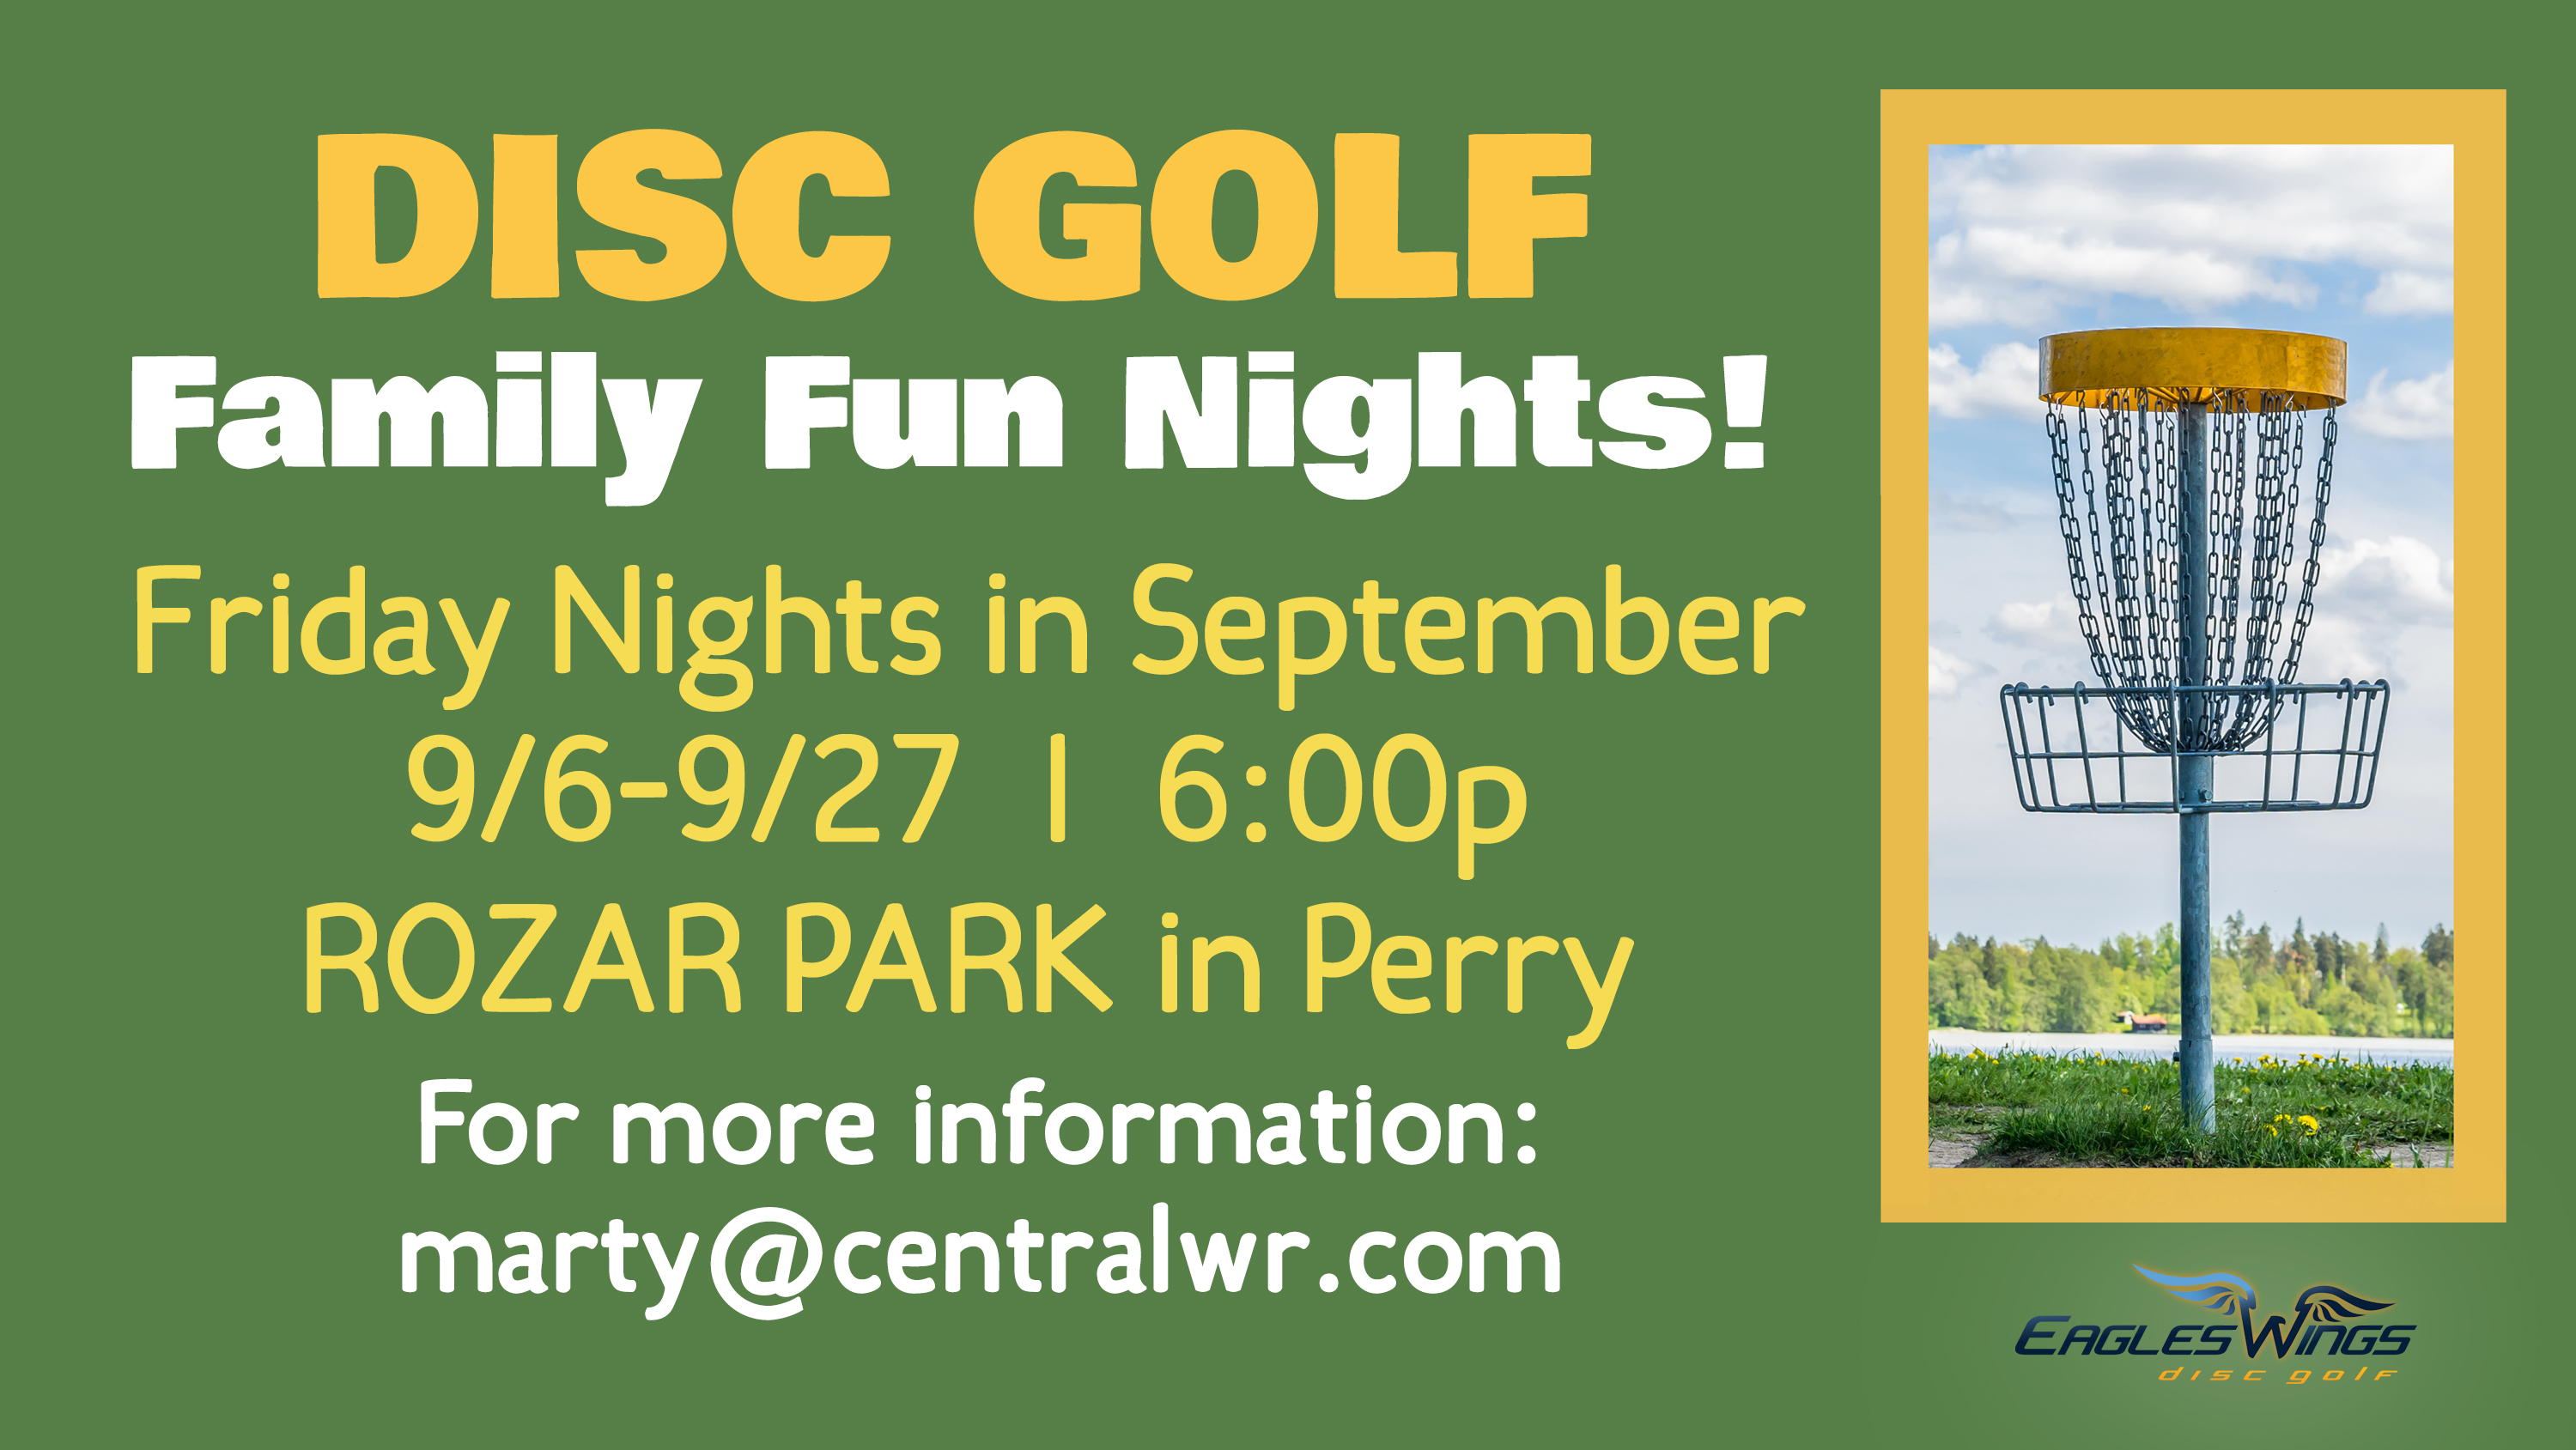 7.5  Disc Golf Family Fun Nights ad 2 image